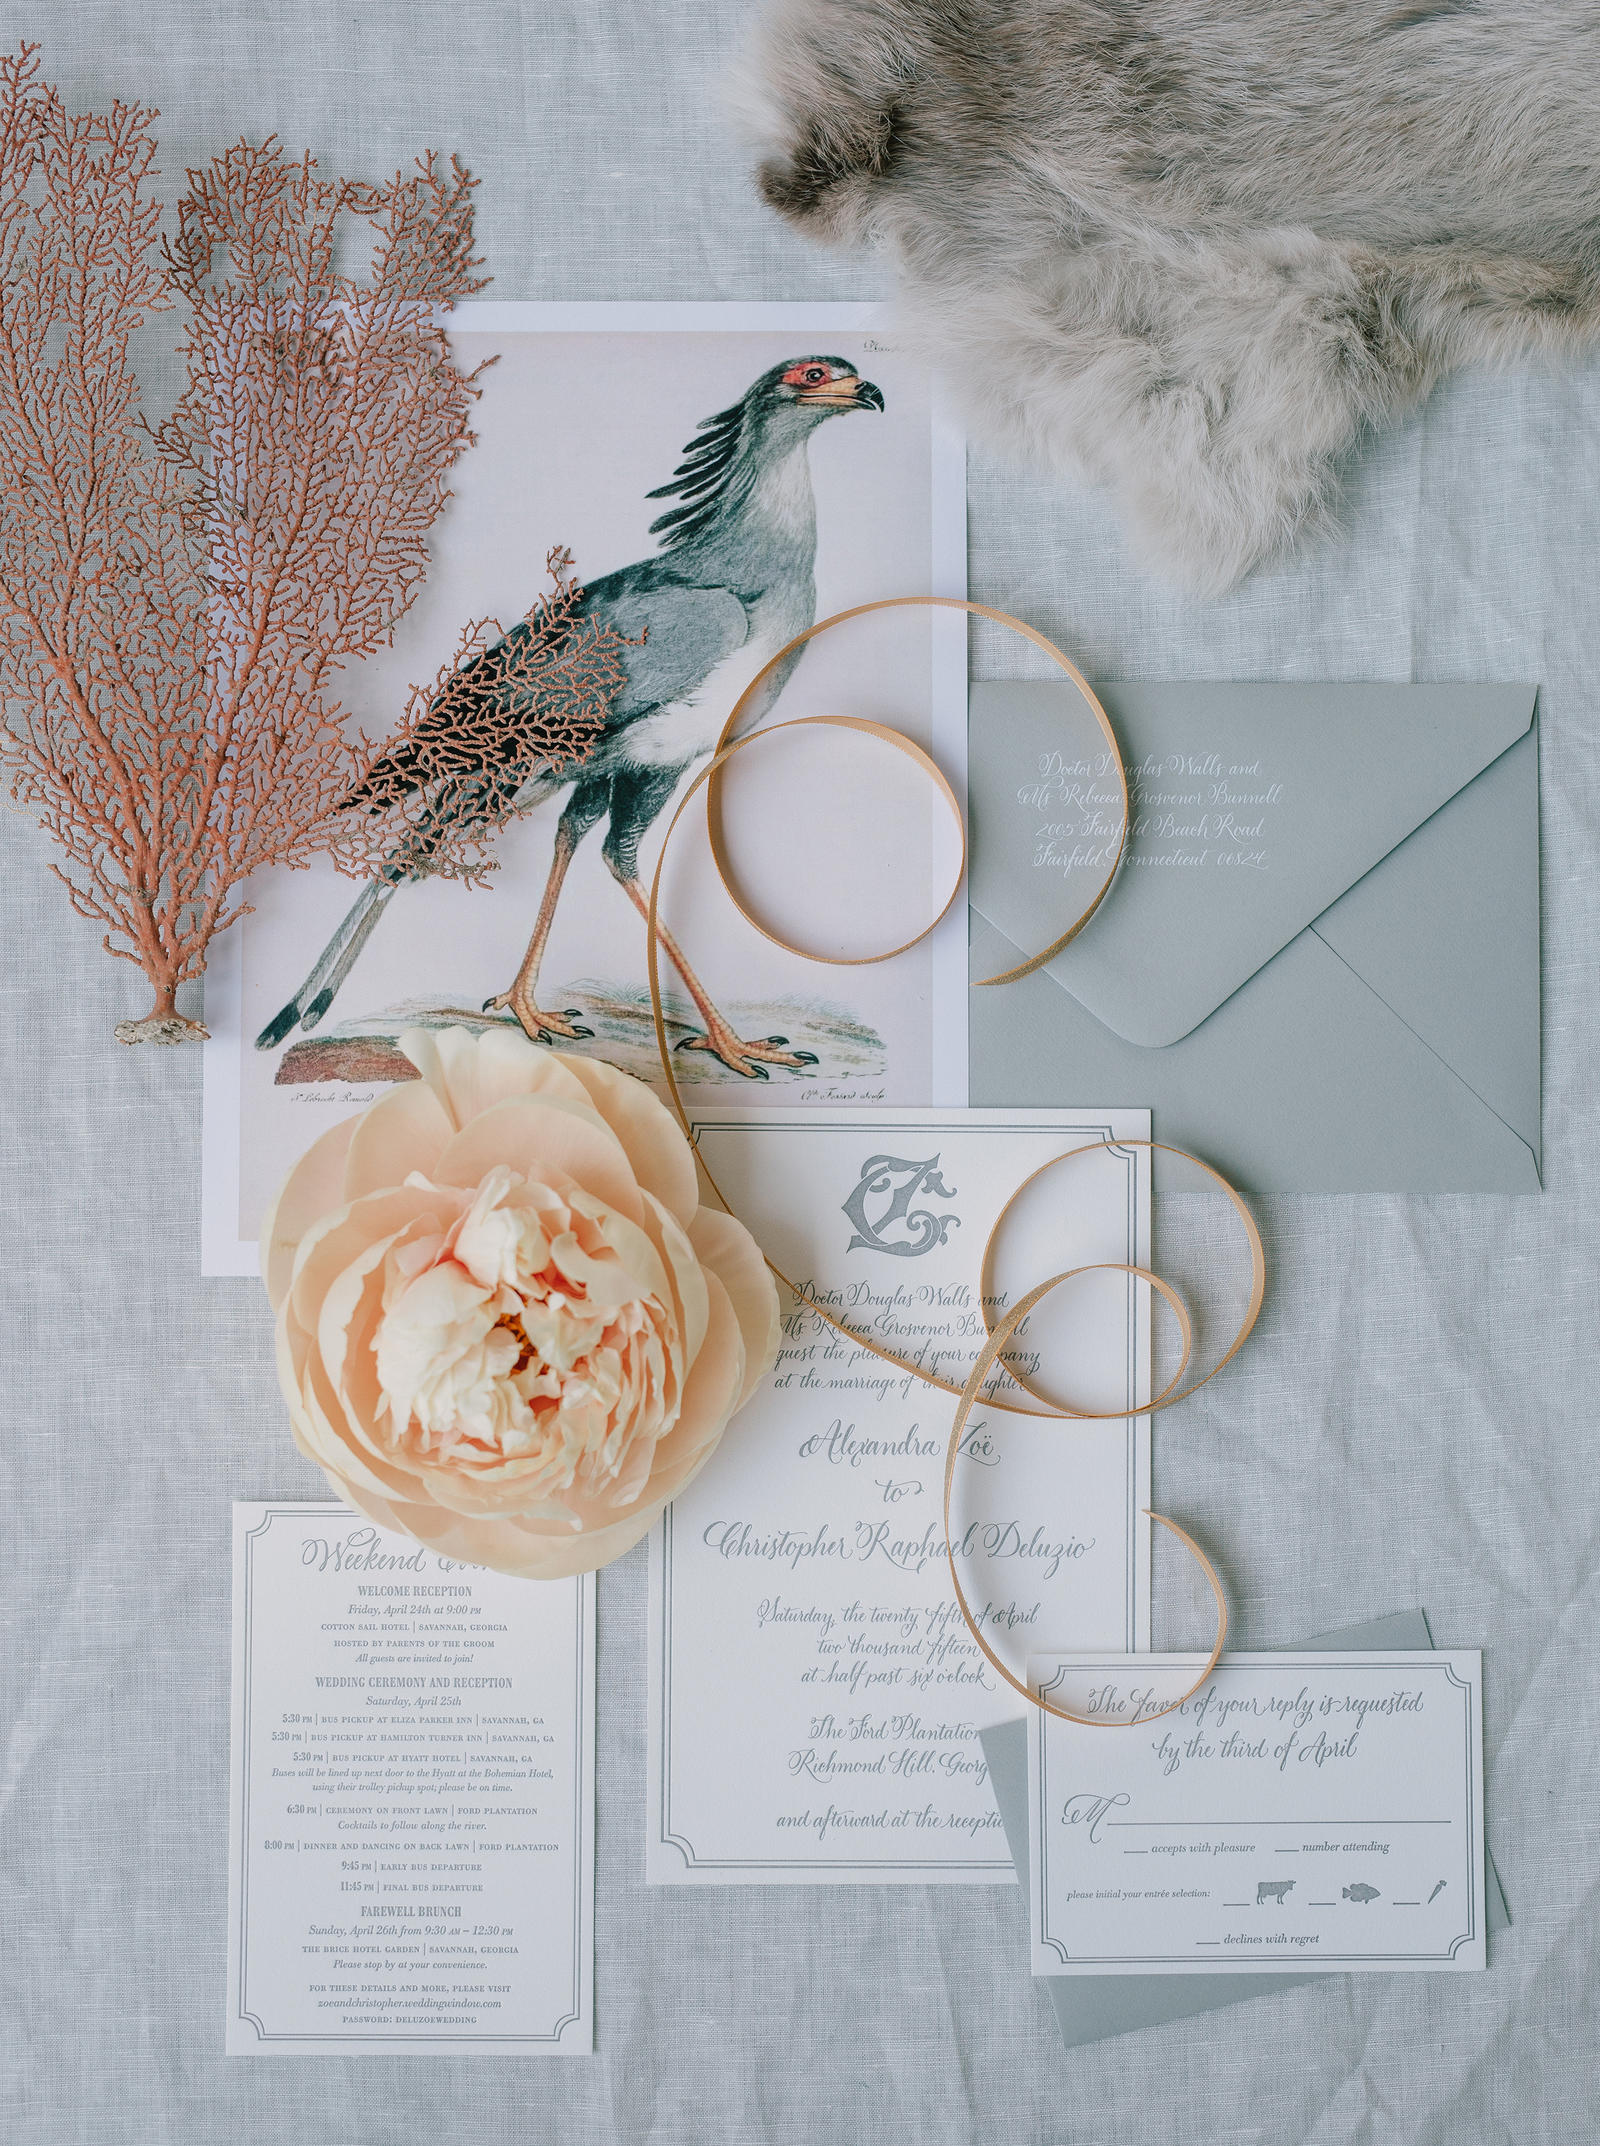 Editorial Photography | Atlanta, GA | A picture of the invitation set for a wedding.